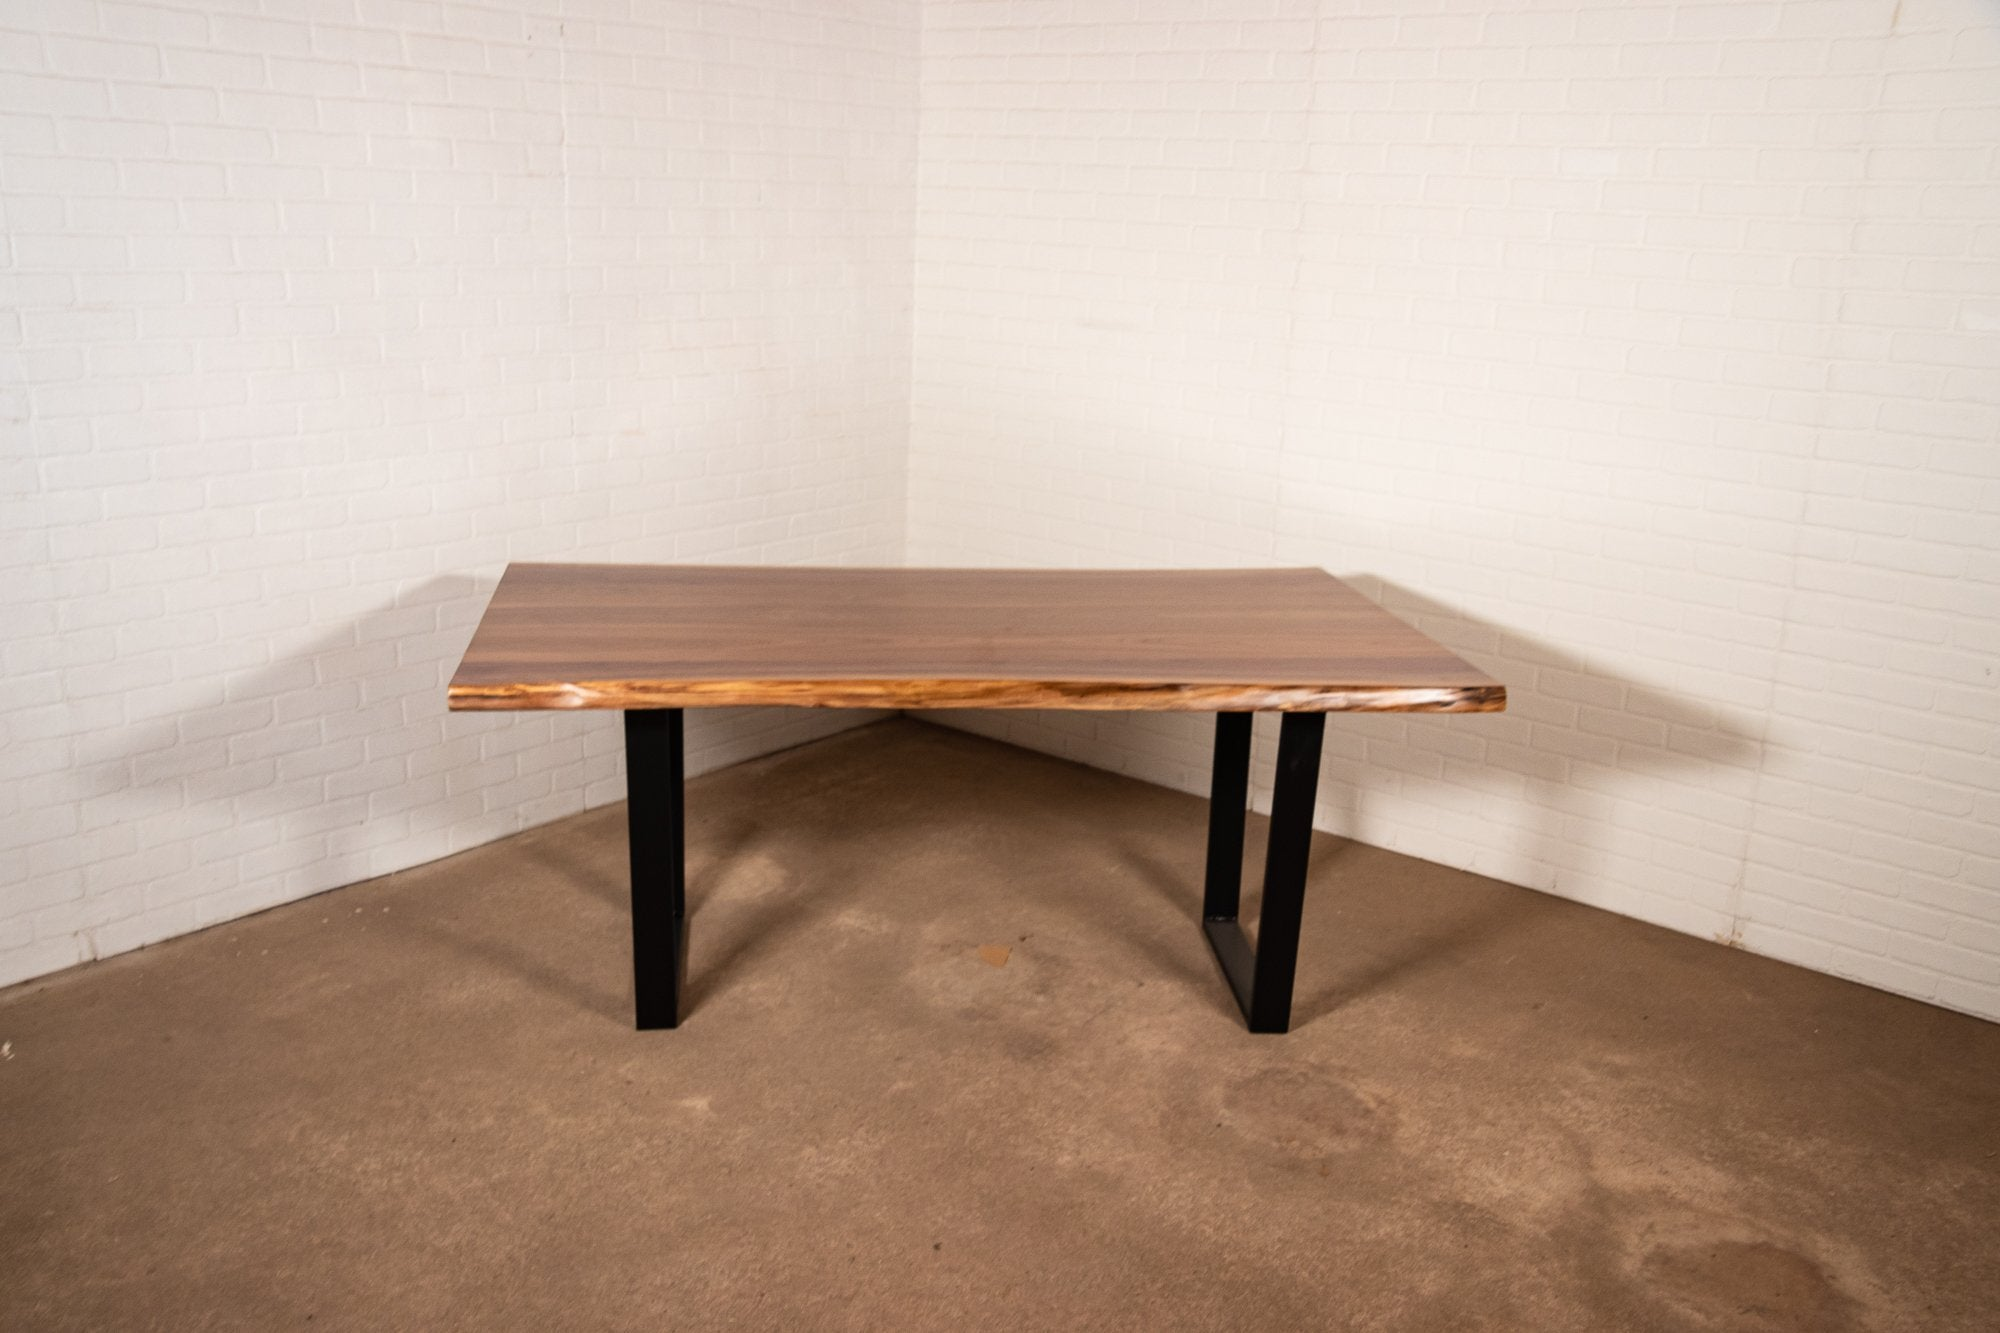 Walnut Live Edge Table with Lacquer Finish - Loewen Design Studios